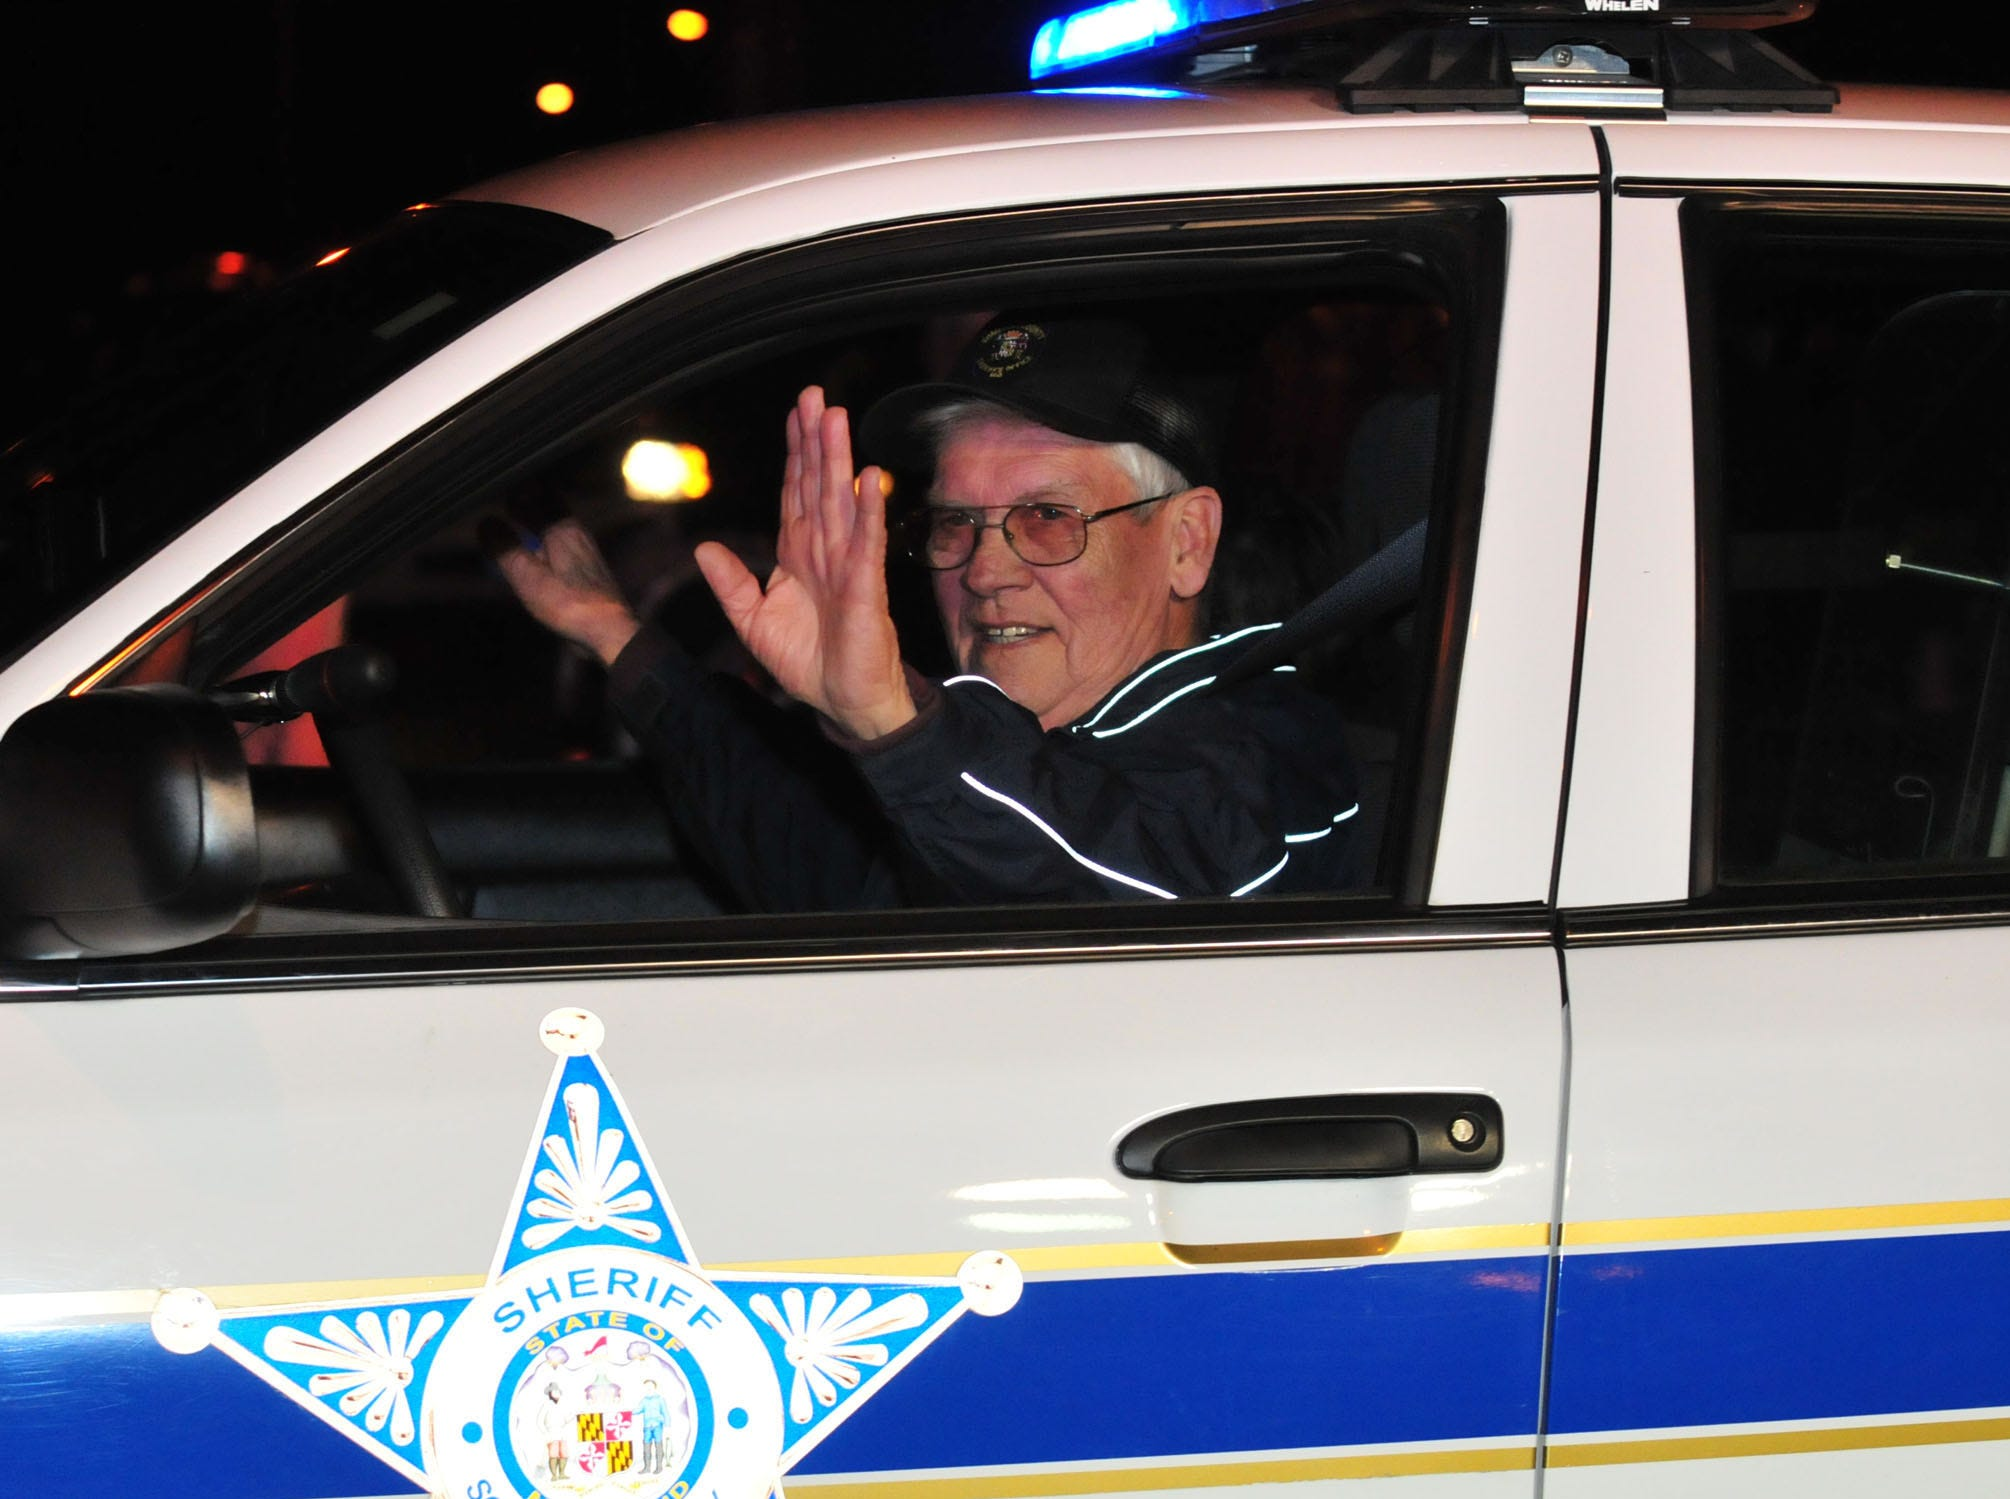 """Somerset County Sheriff Robert """"Bobby"""" Jones waves to the crowd at the Crisfield Christmas parade in December 2009."""